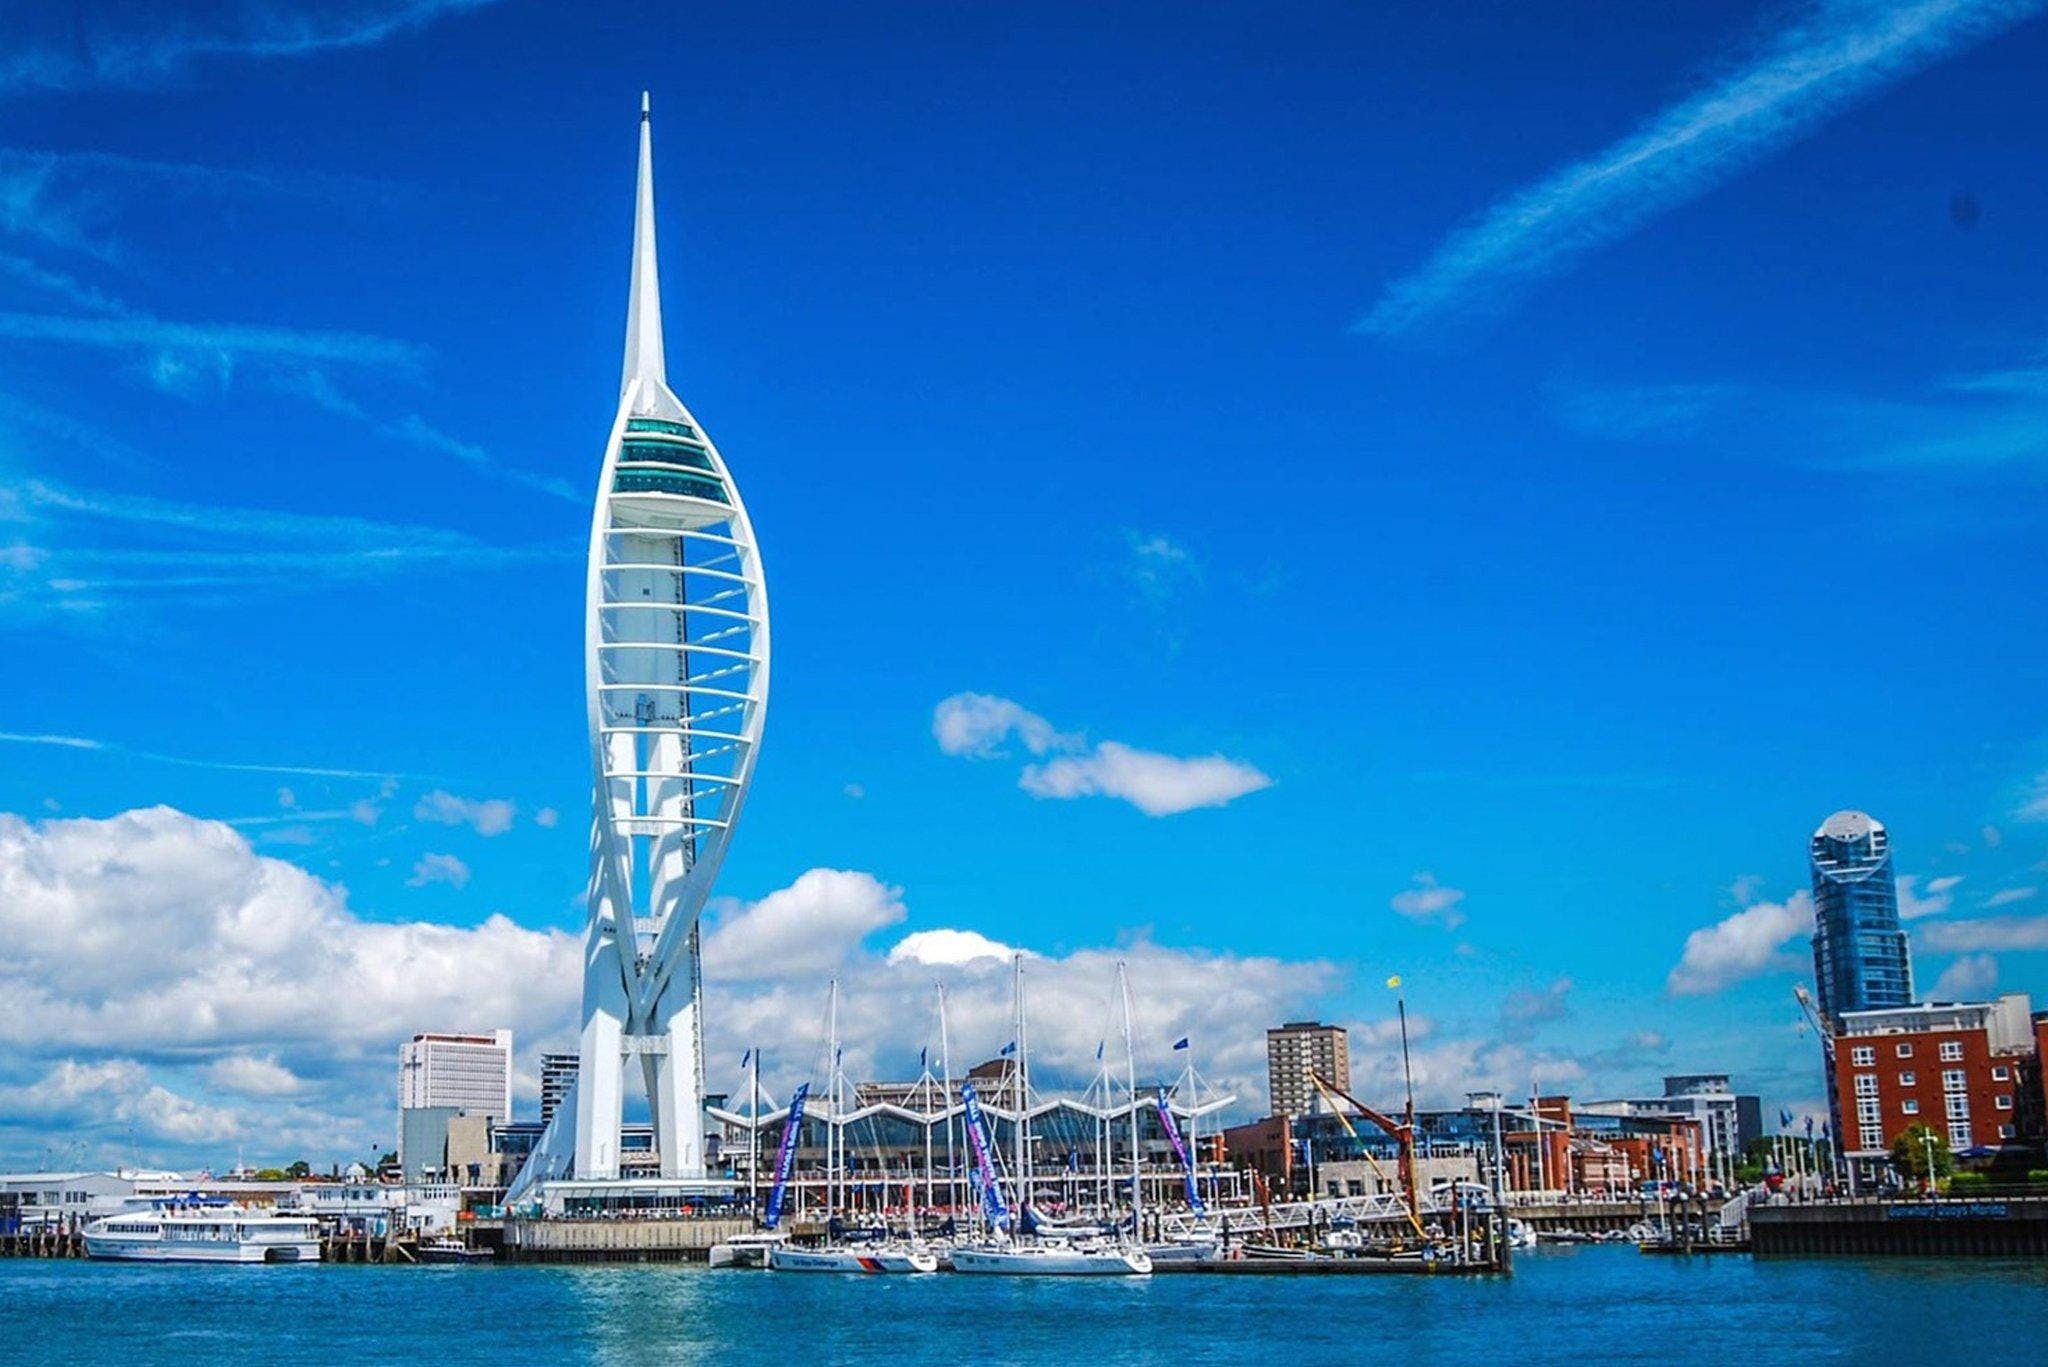 Portsmouth Treasure Hunt with 10% off at the finishing Treasure (the pub)